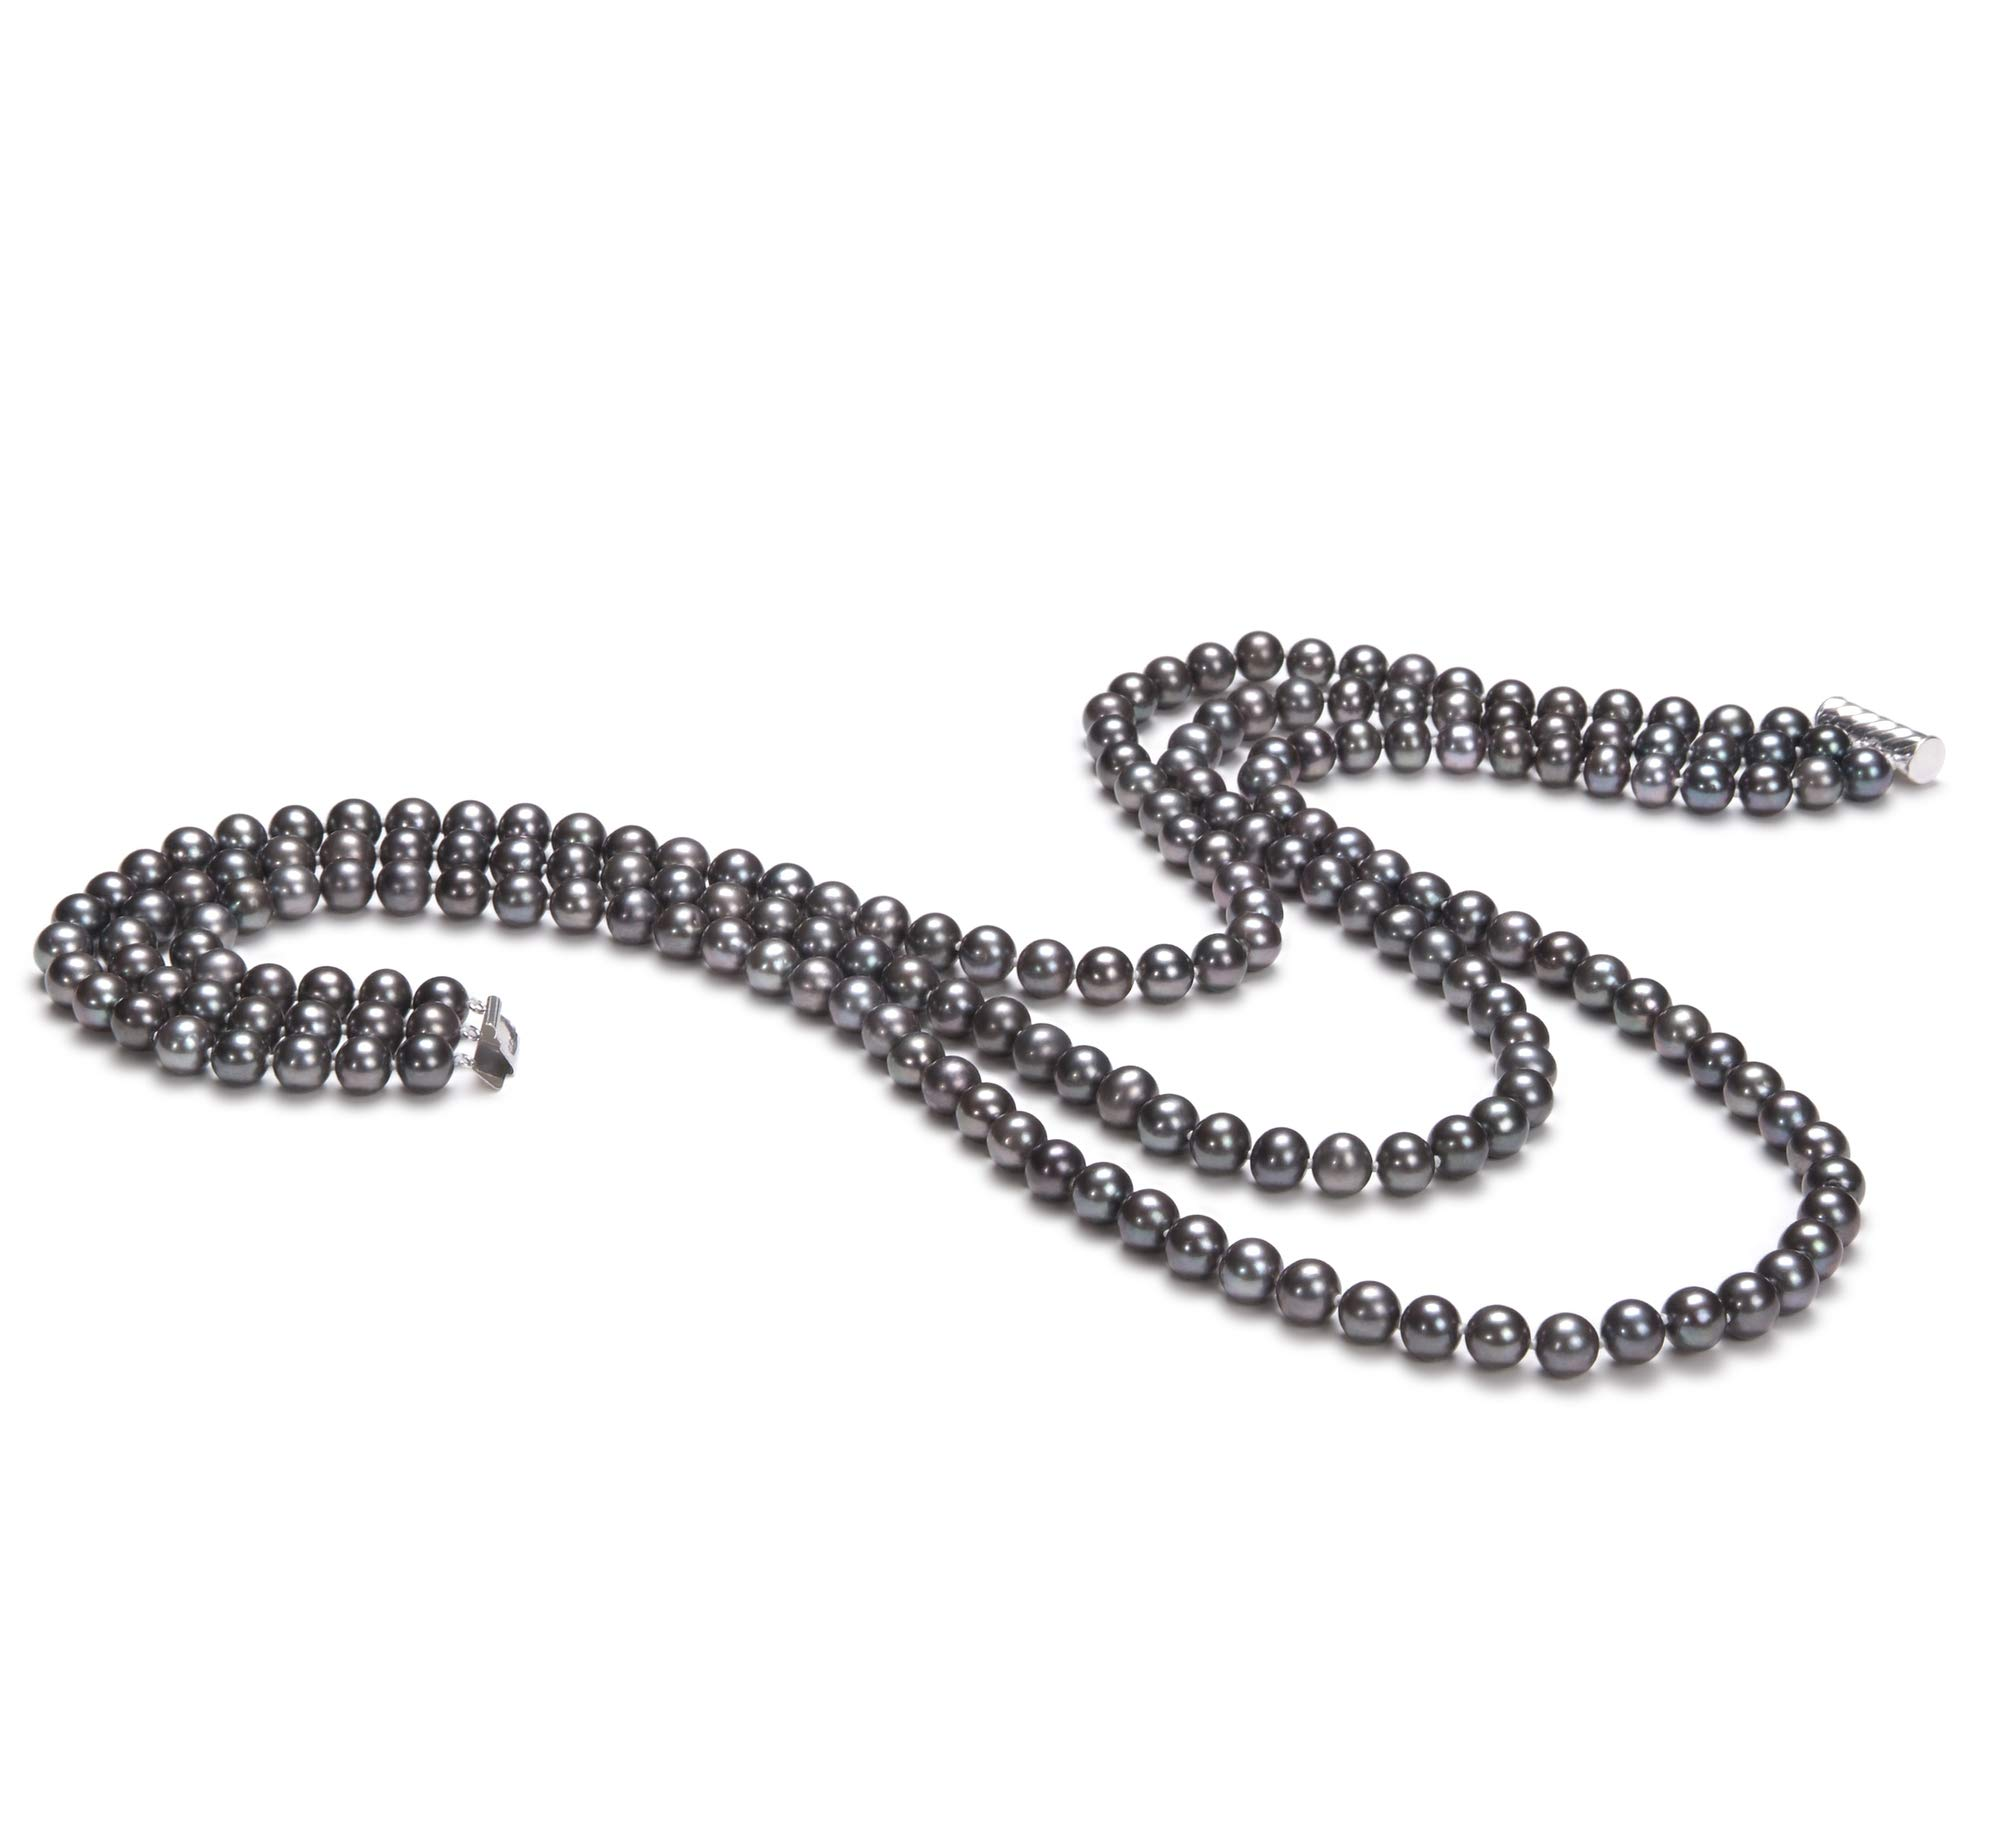 Aline Black 6-7mm Tripple Strand AA Quality Freshwater Cultured Pearl Necklace for Women